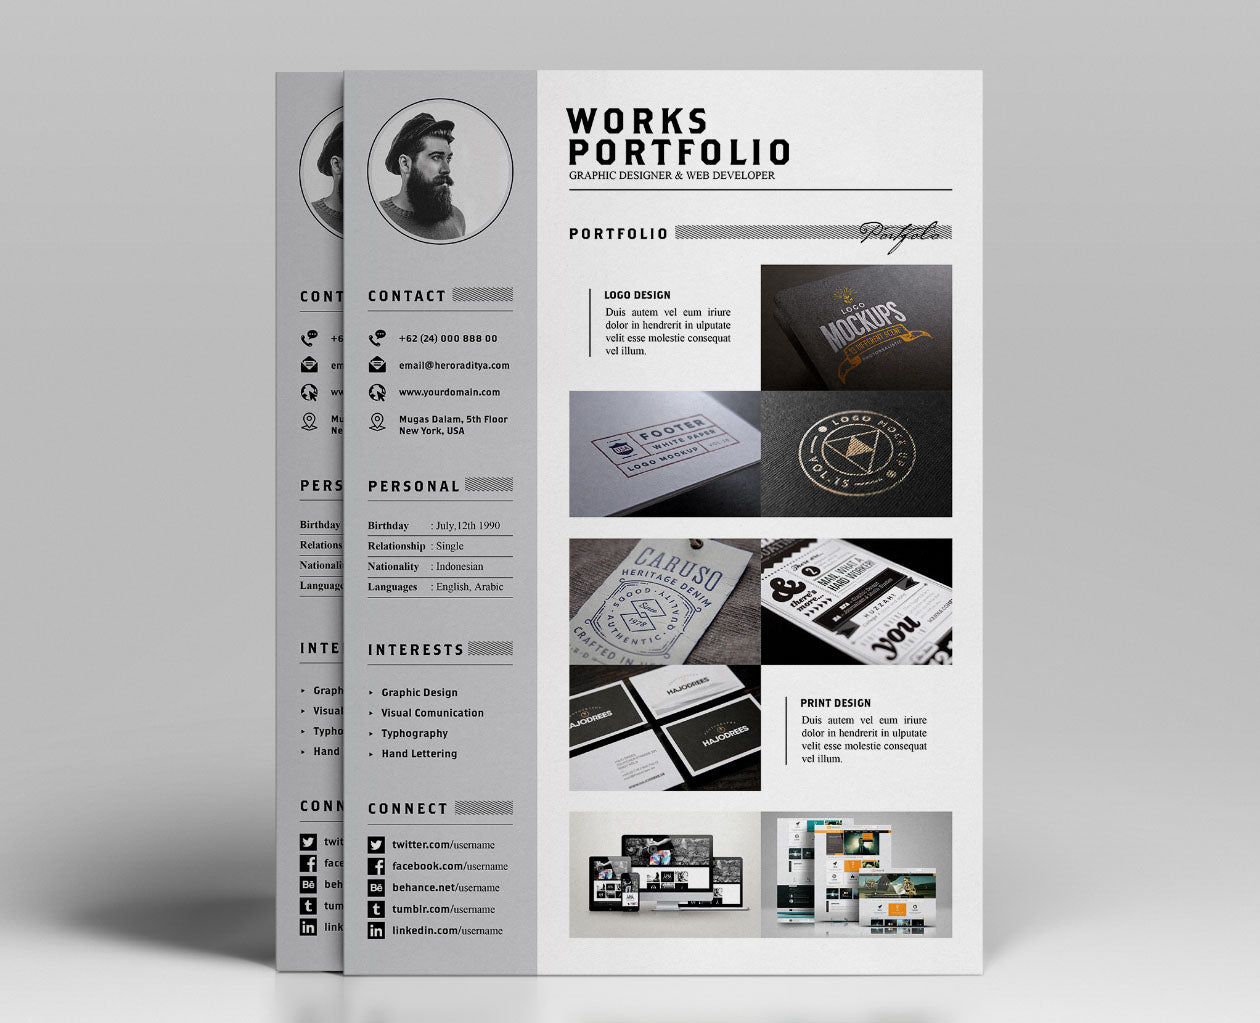 free resume  cv and portfolio template in photoshop  psd